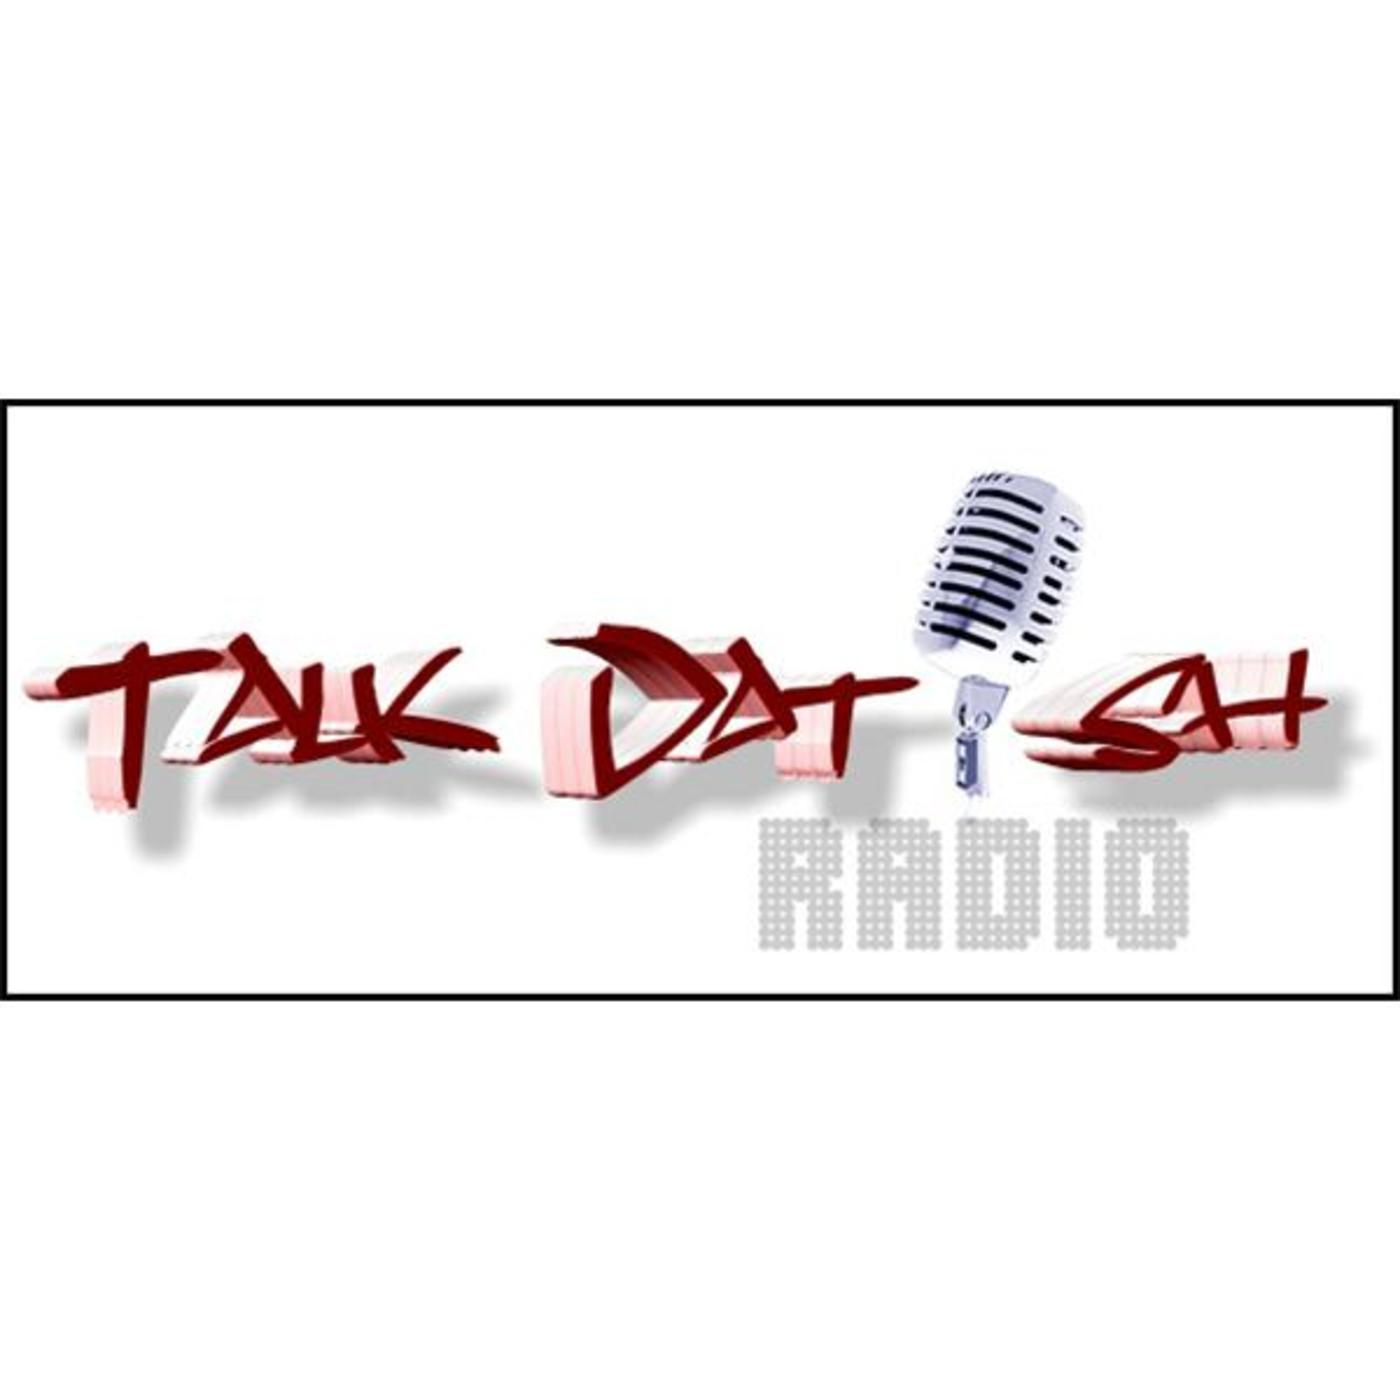 Talk Dat Ish Radio- Talk About Us 'Cuz Were Talking About You!